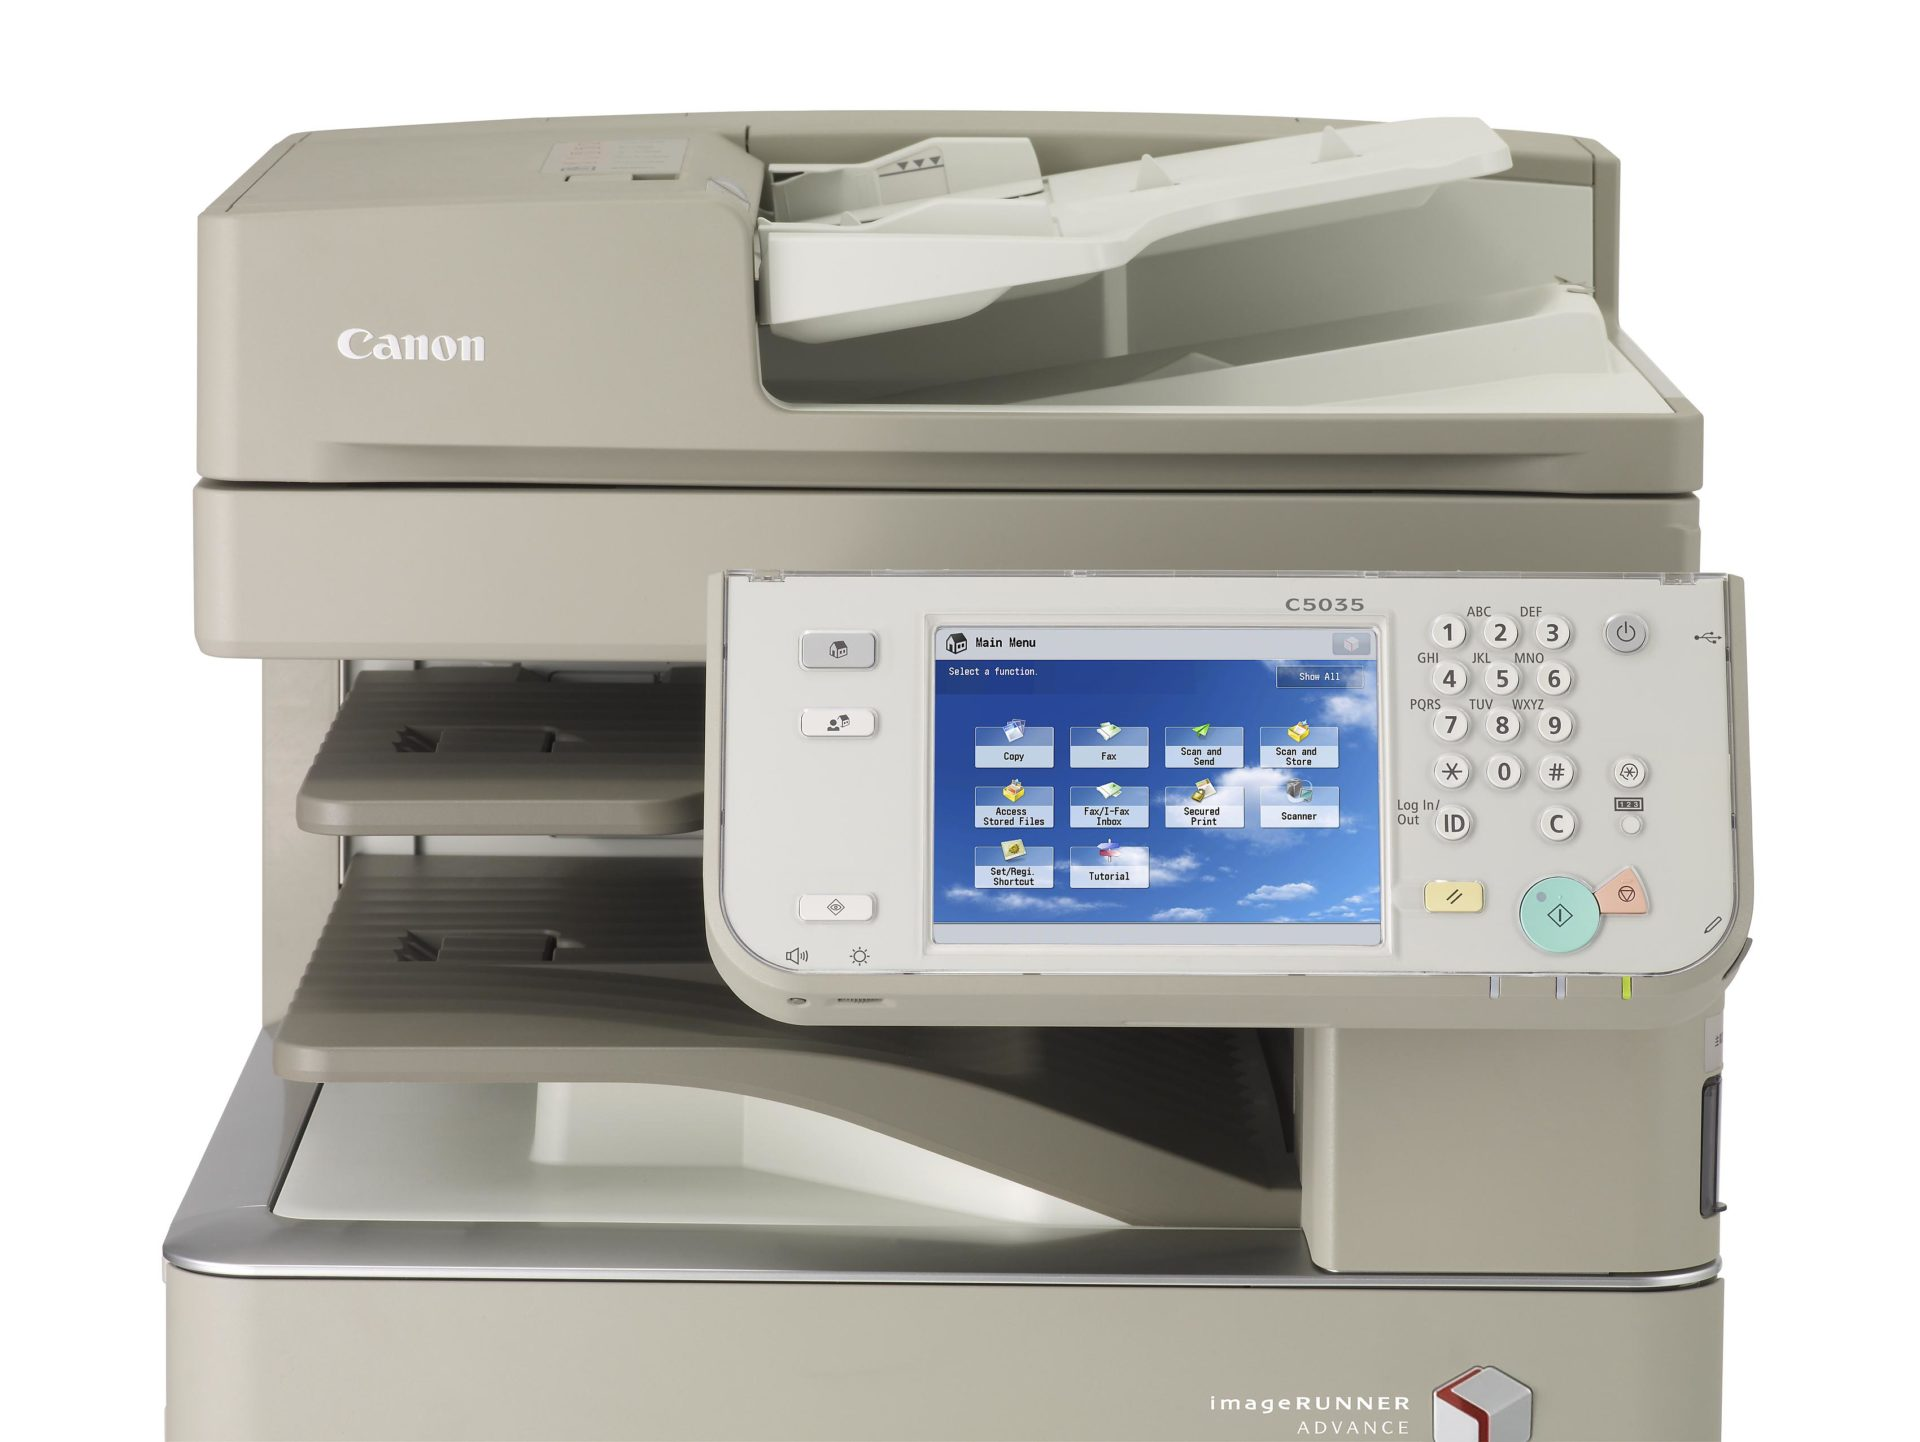 Canon imageRUNNER ADVANCE C5000 Series